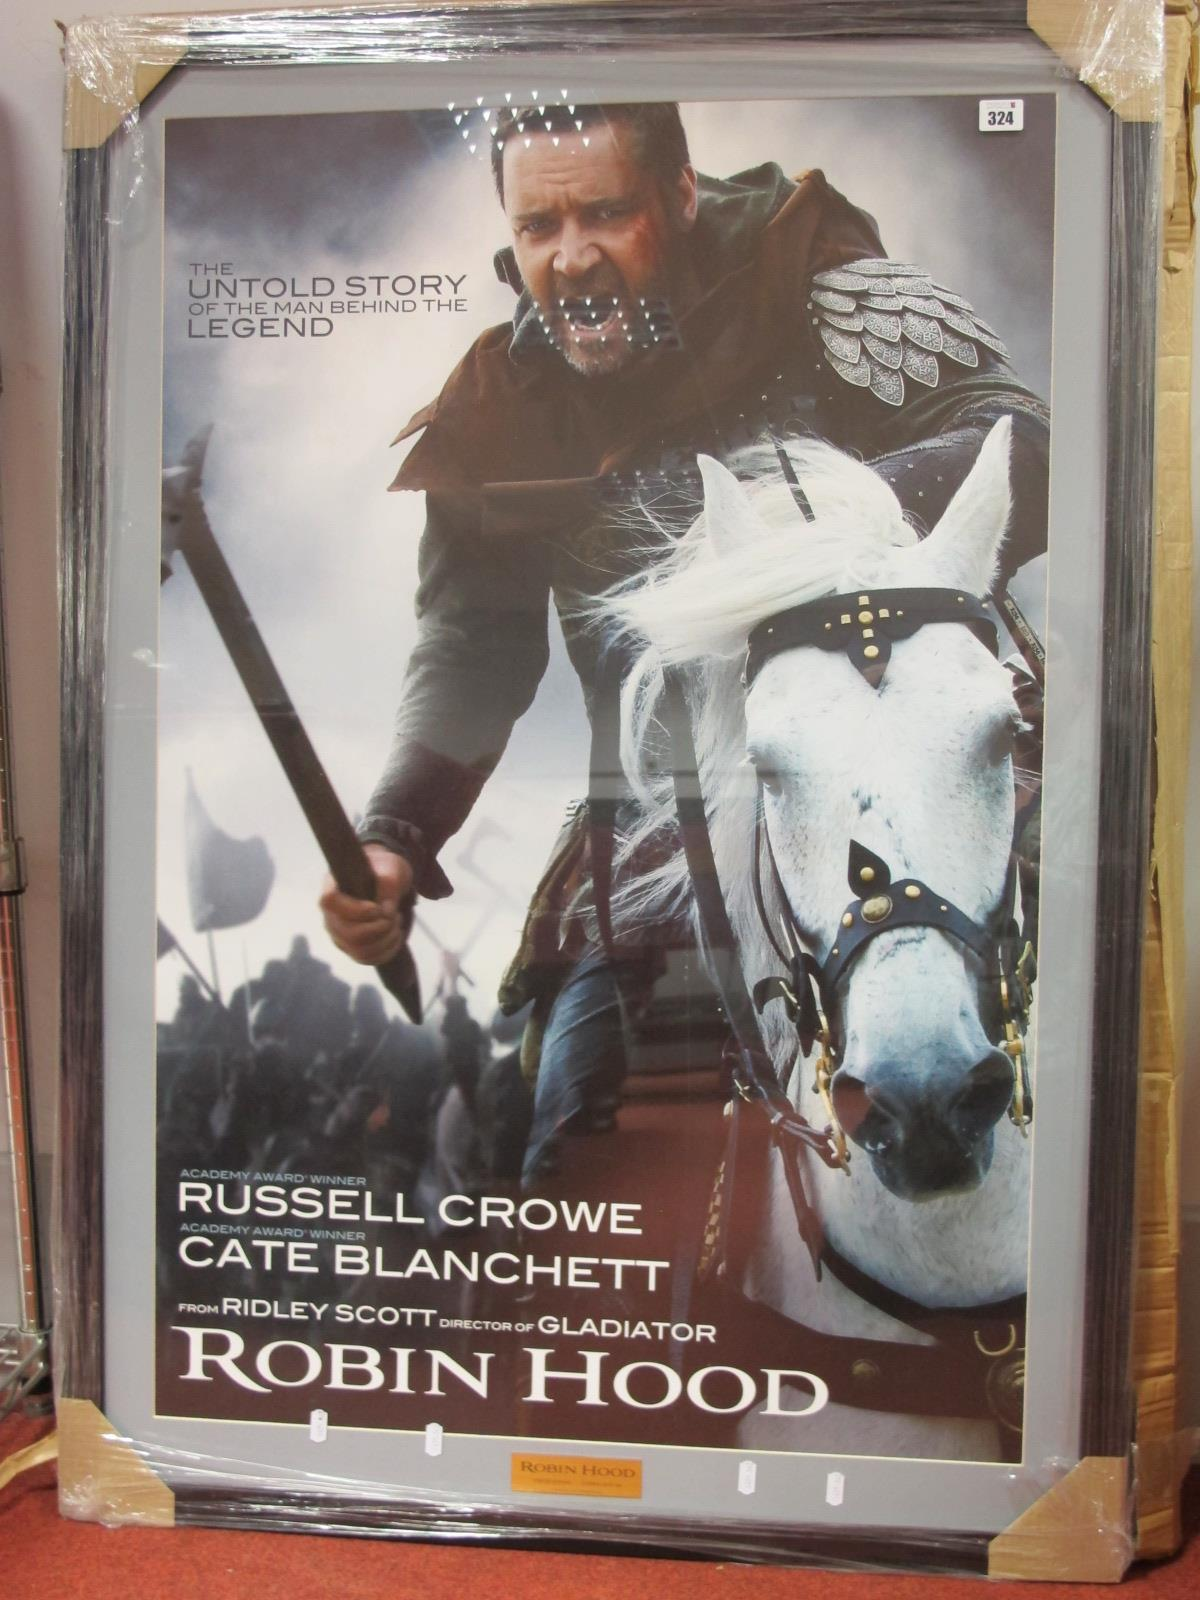 Ridley Scott's Robin Hood promotional Display Limited Edition 120 of 200 (Framed), 117cm x 82cm.